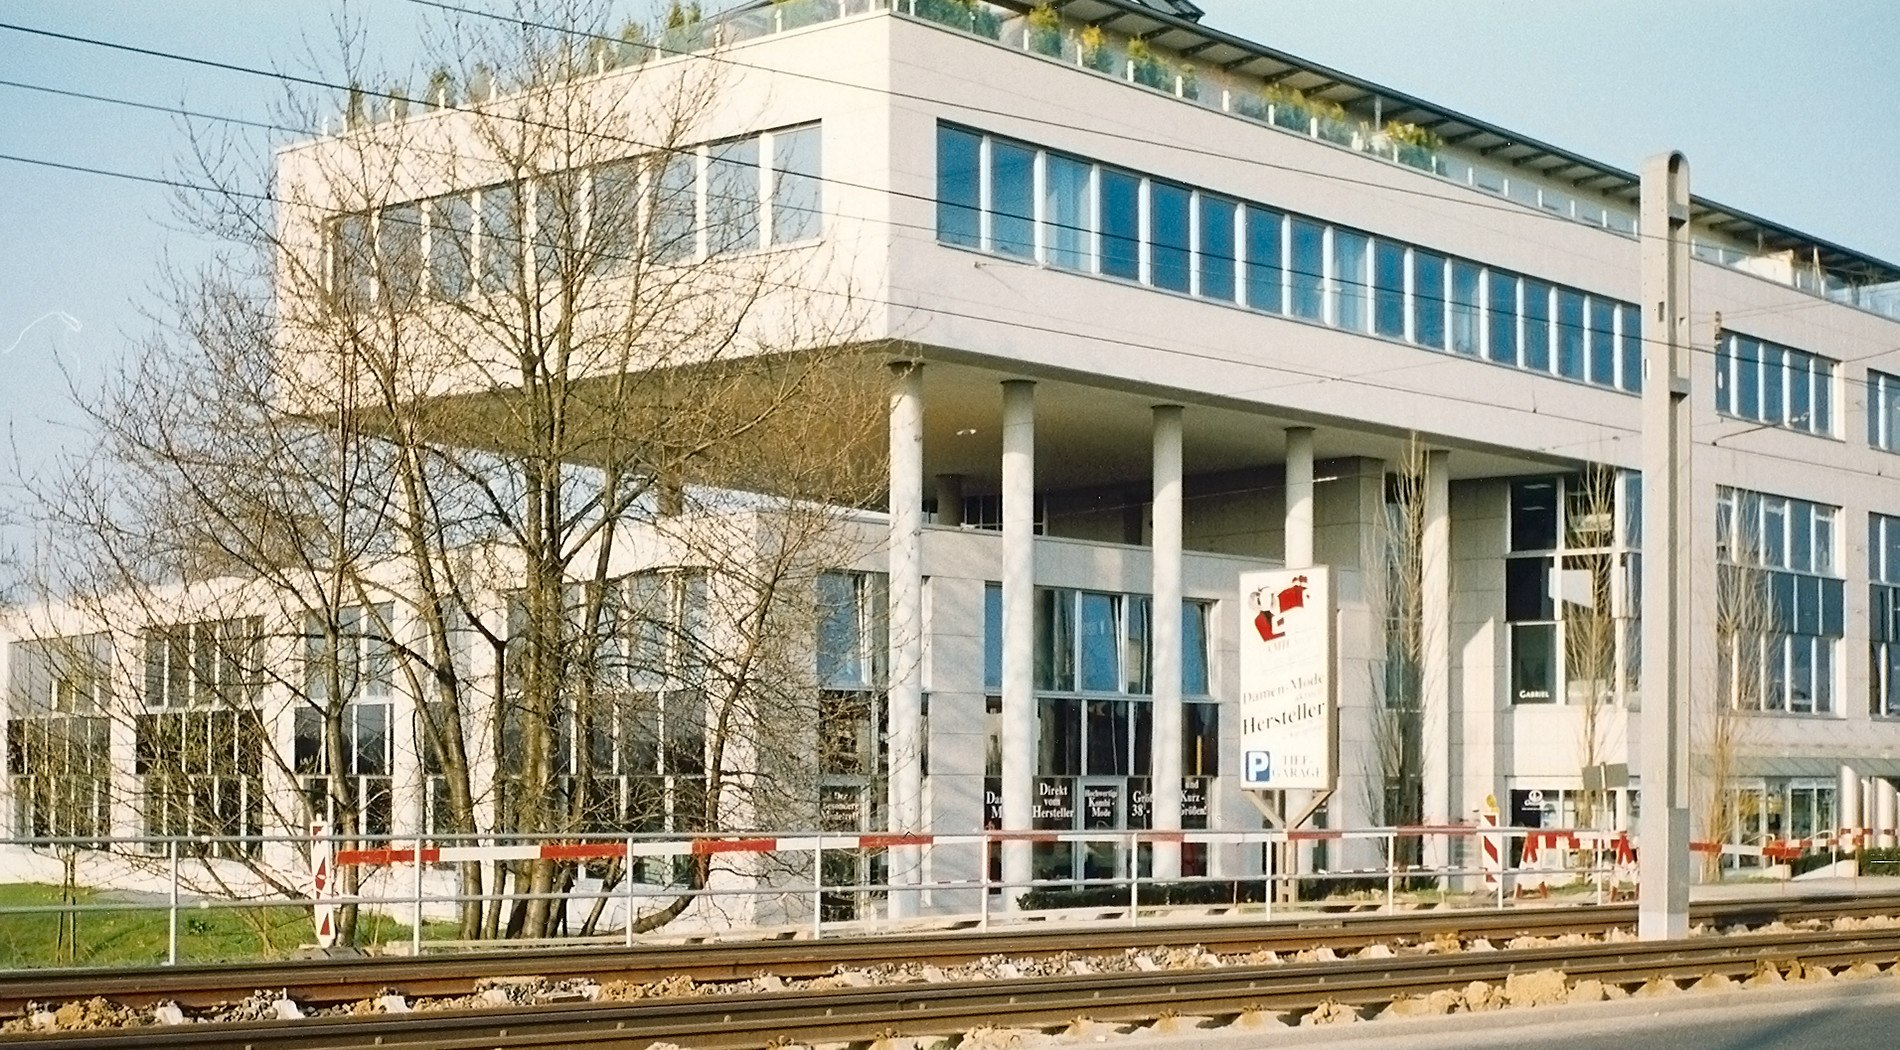 Project: Residential and commercial building in Stuttgart - Heumaden